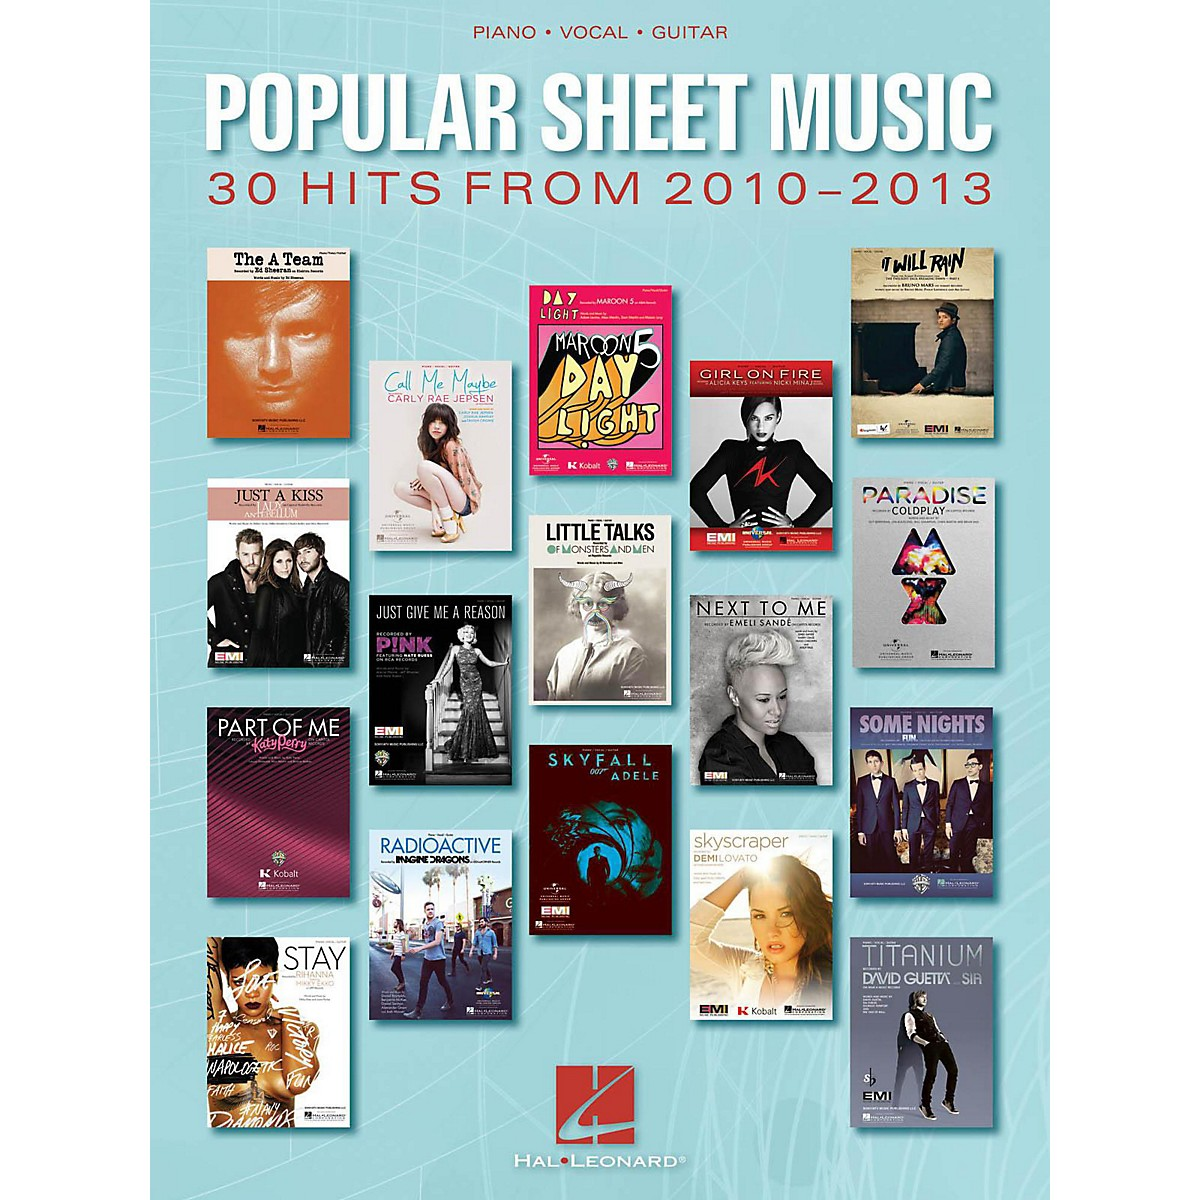 Hal Leonard Popular Sheet Music - 30 Hits From 2010 - 2013 for Piano/Vocal/Guitar